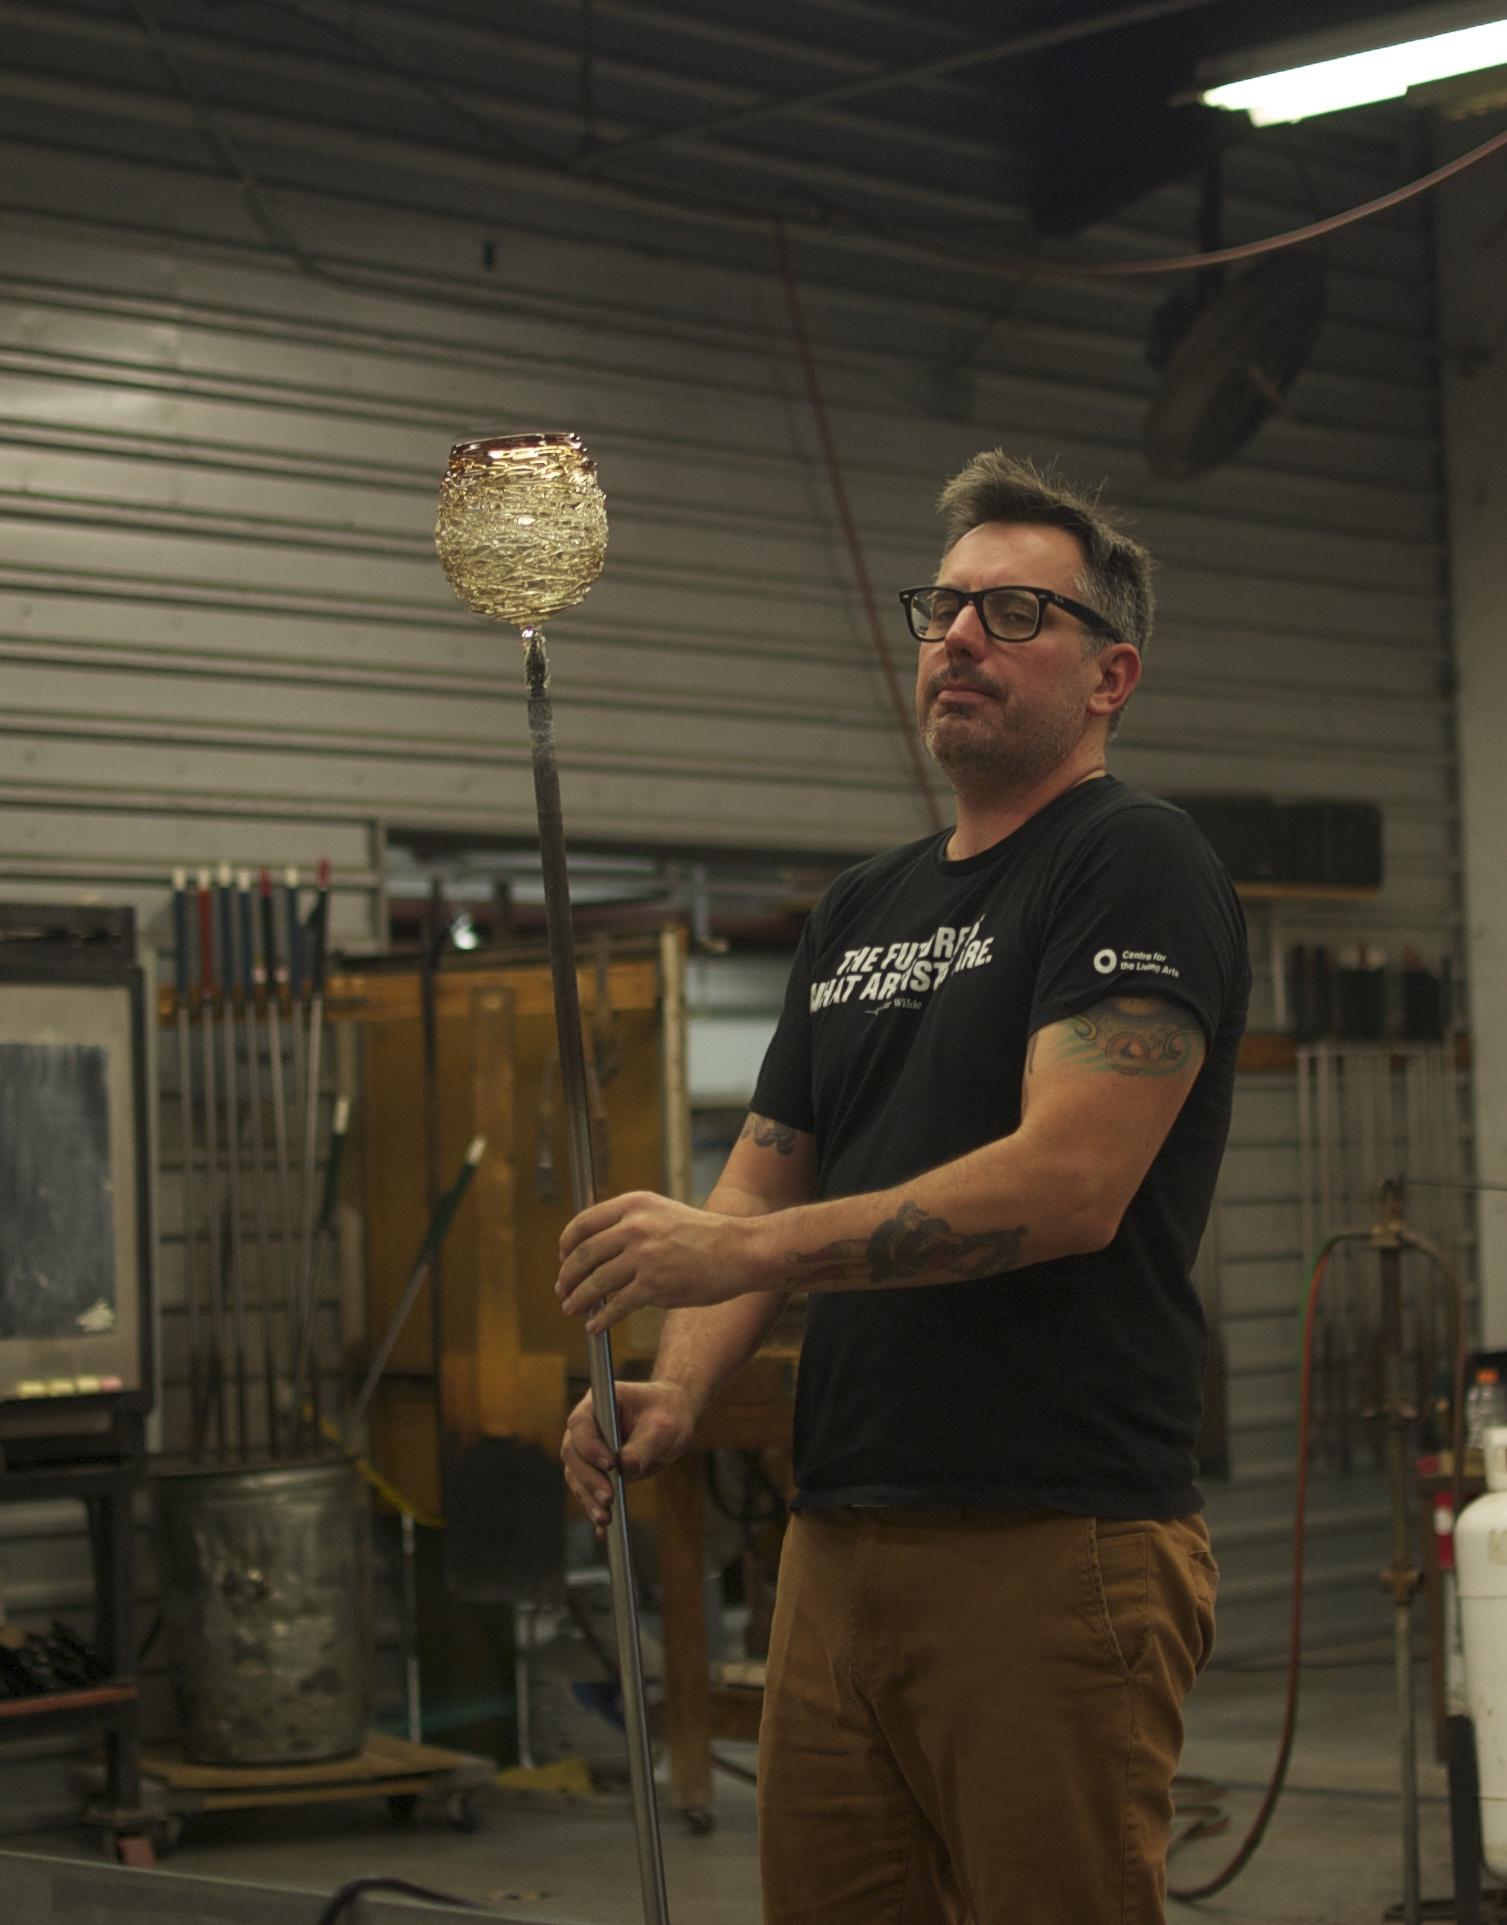 Glass blower showing off a bird's nest light fixture cover